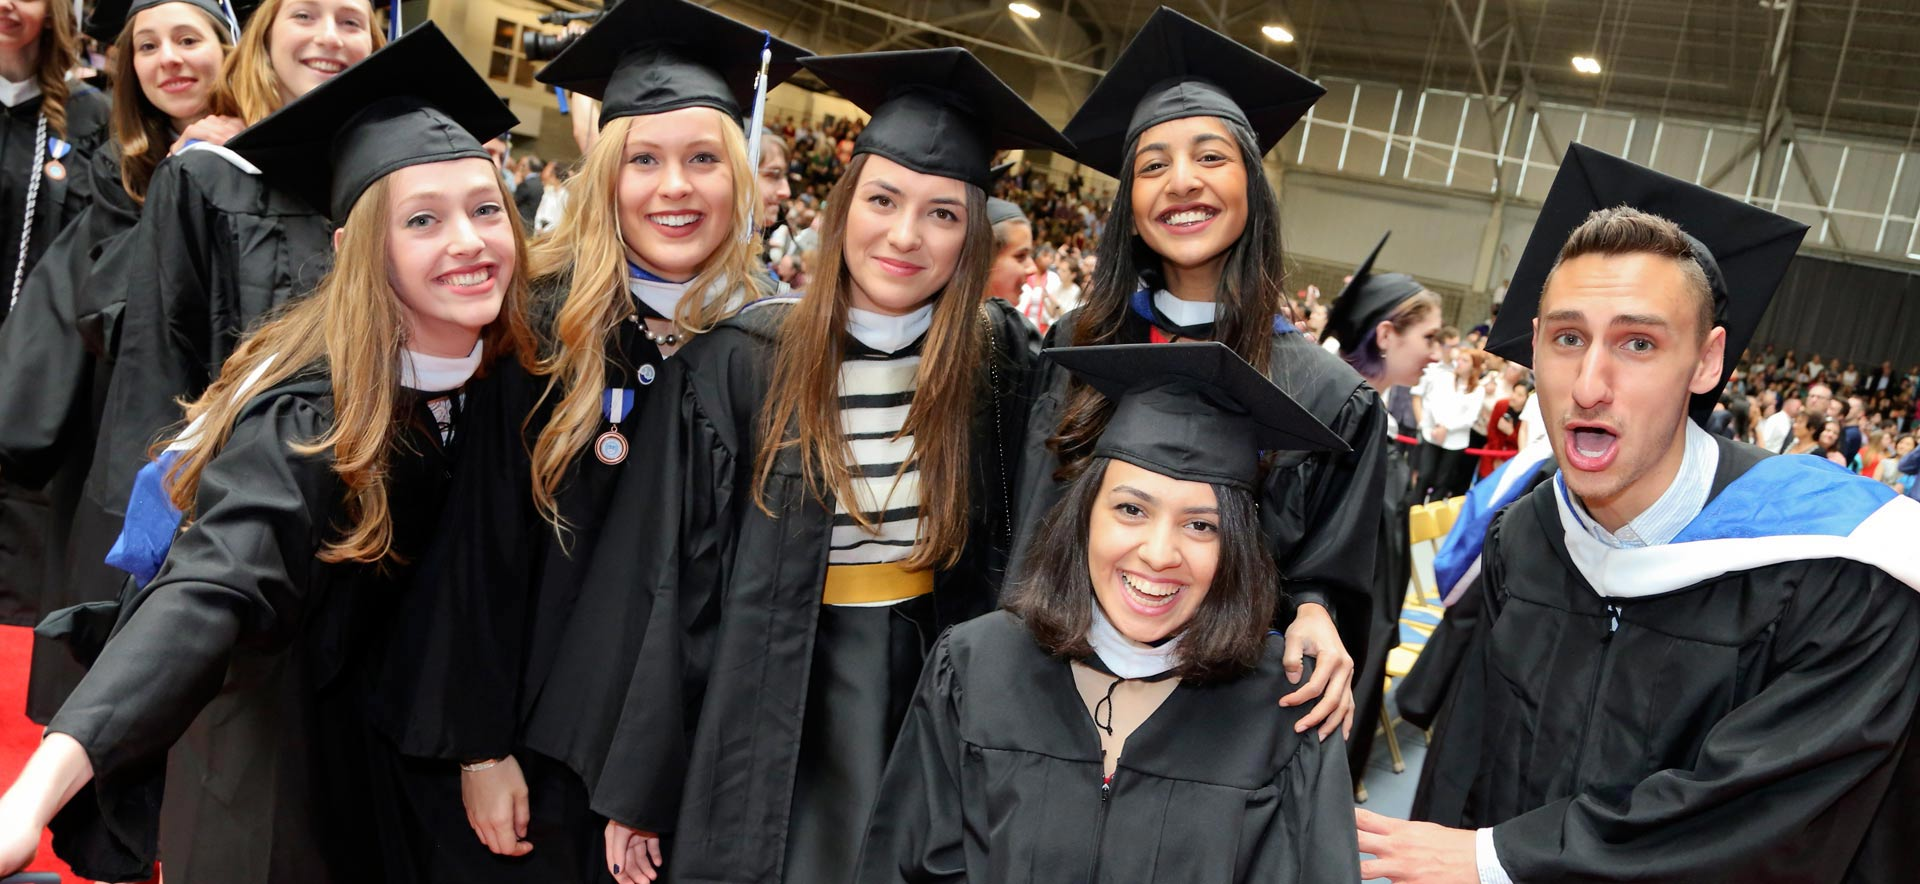 Male and female students wearing caps and gowns and smiling